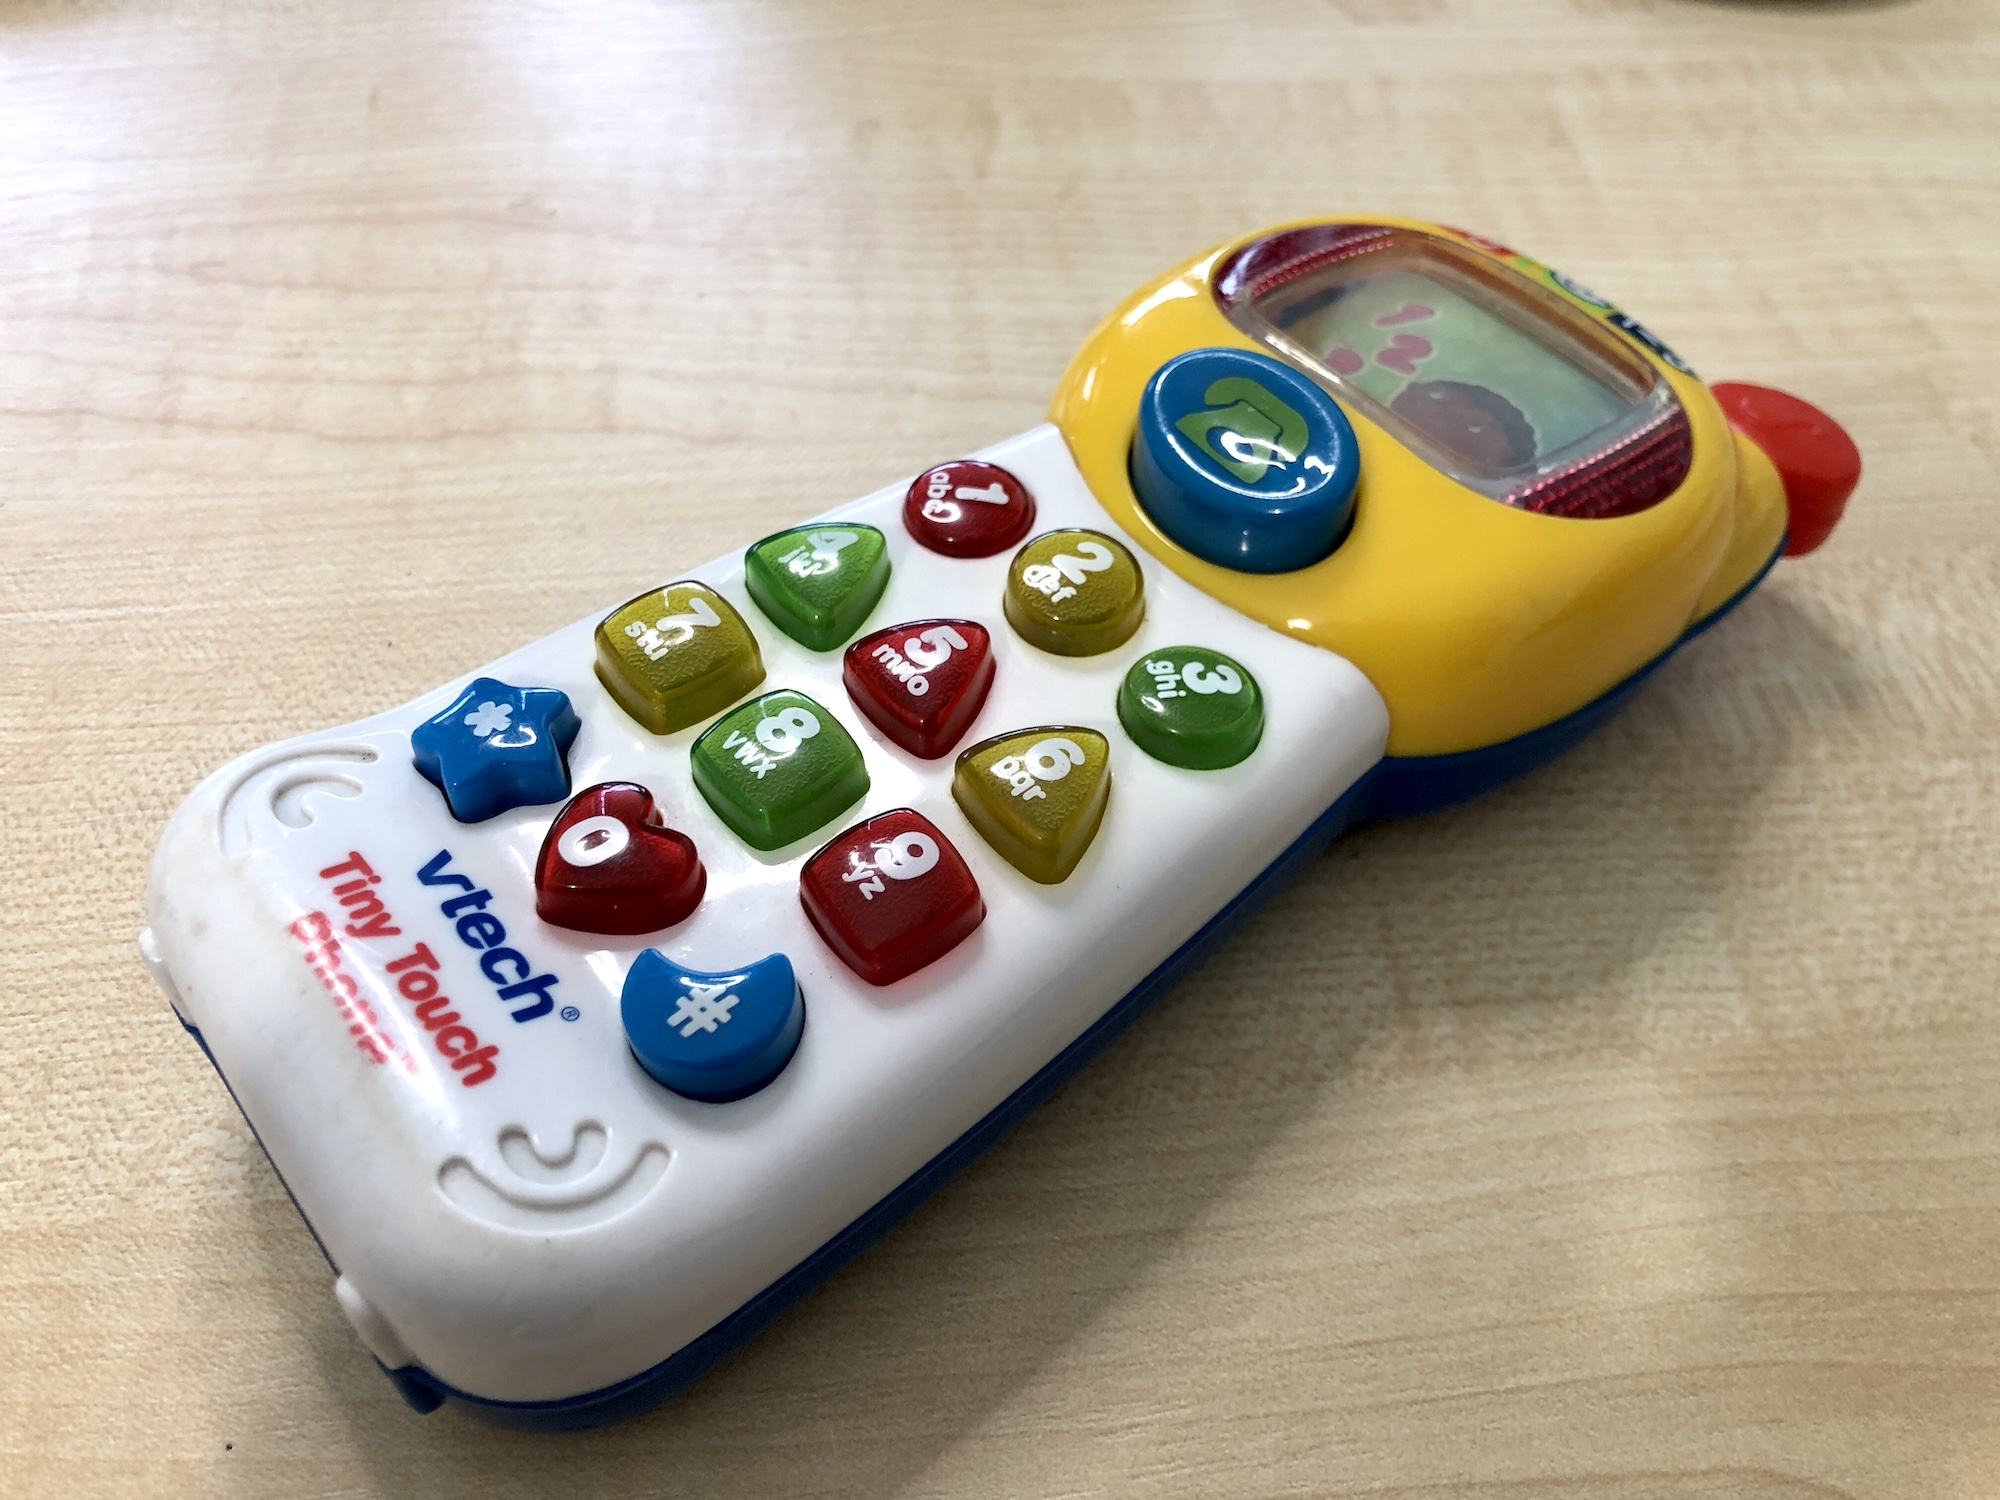 A child's phone lying on a desk